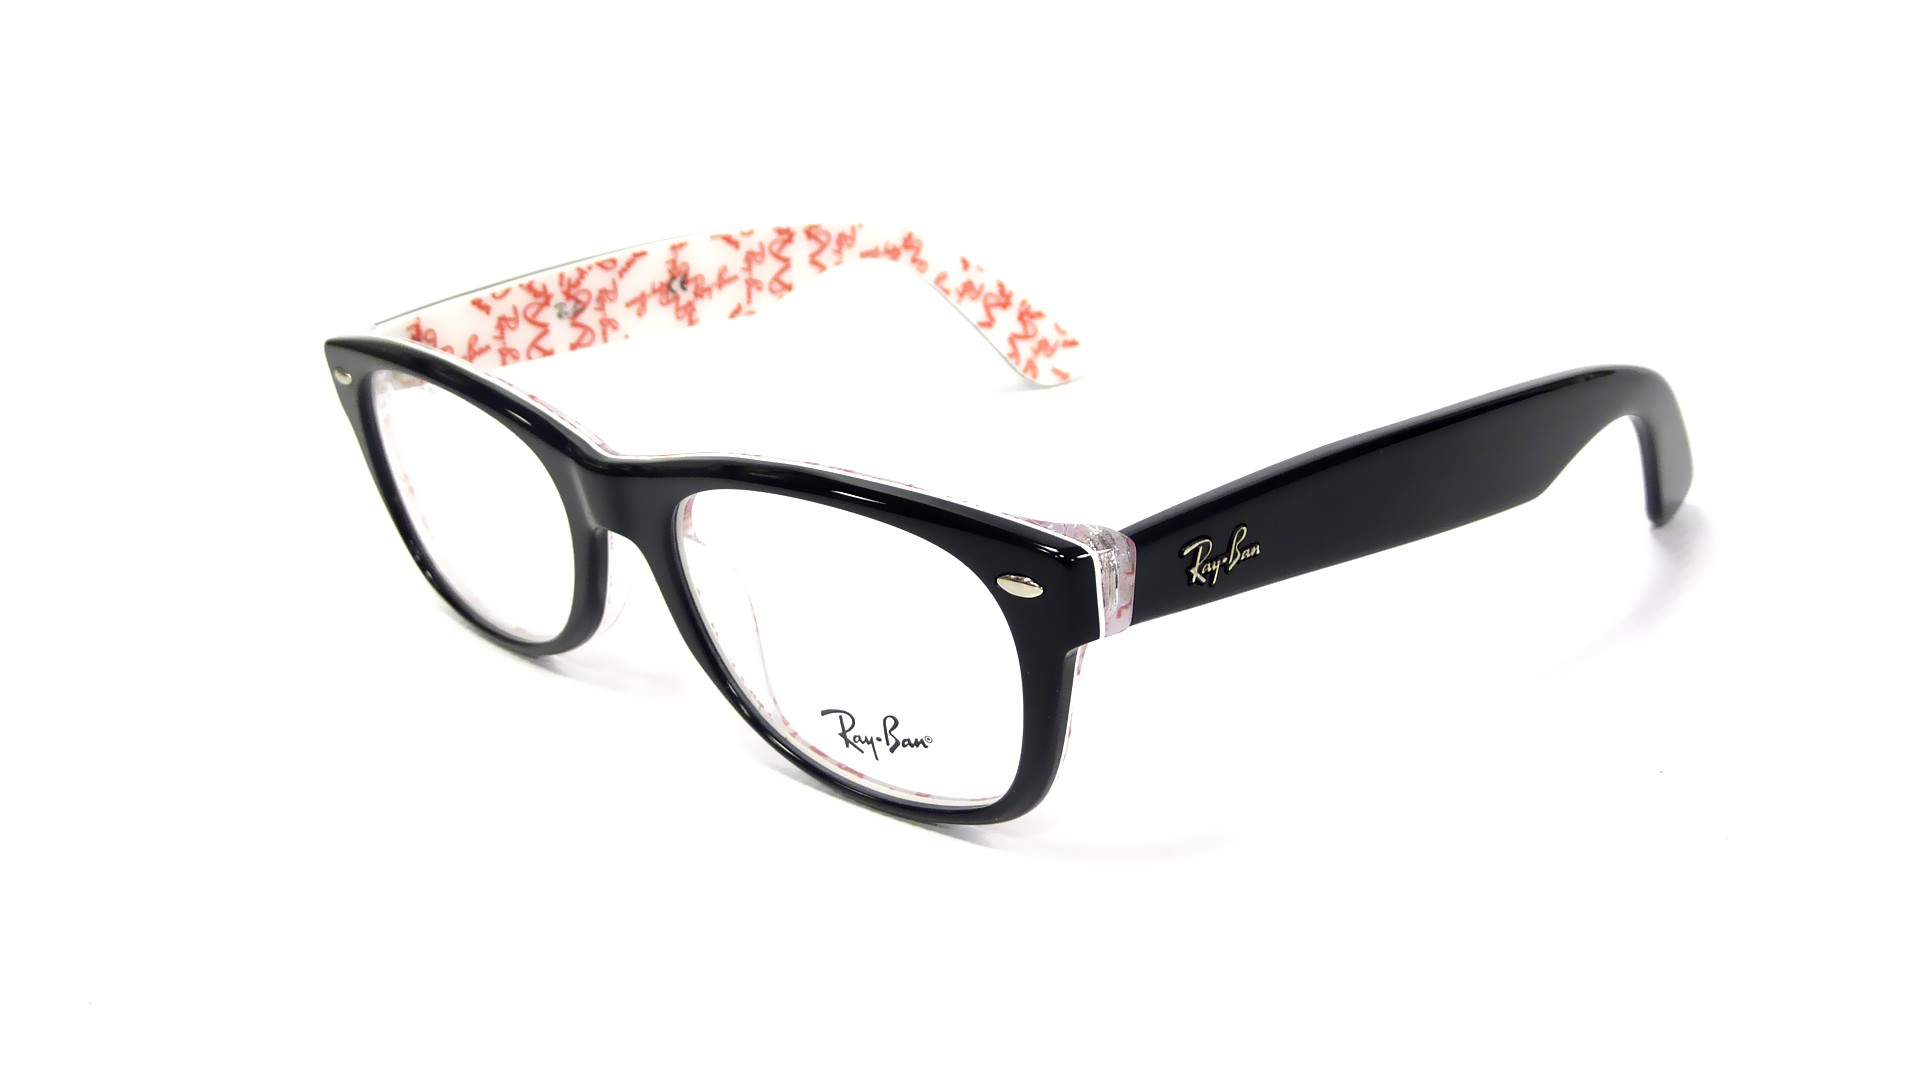 Glasses Frames Recto Or Quiapo : Ray Ban New Wayfarer RX RB 5184 5014 Black and Pattern Medium